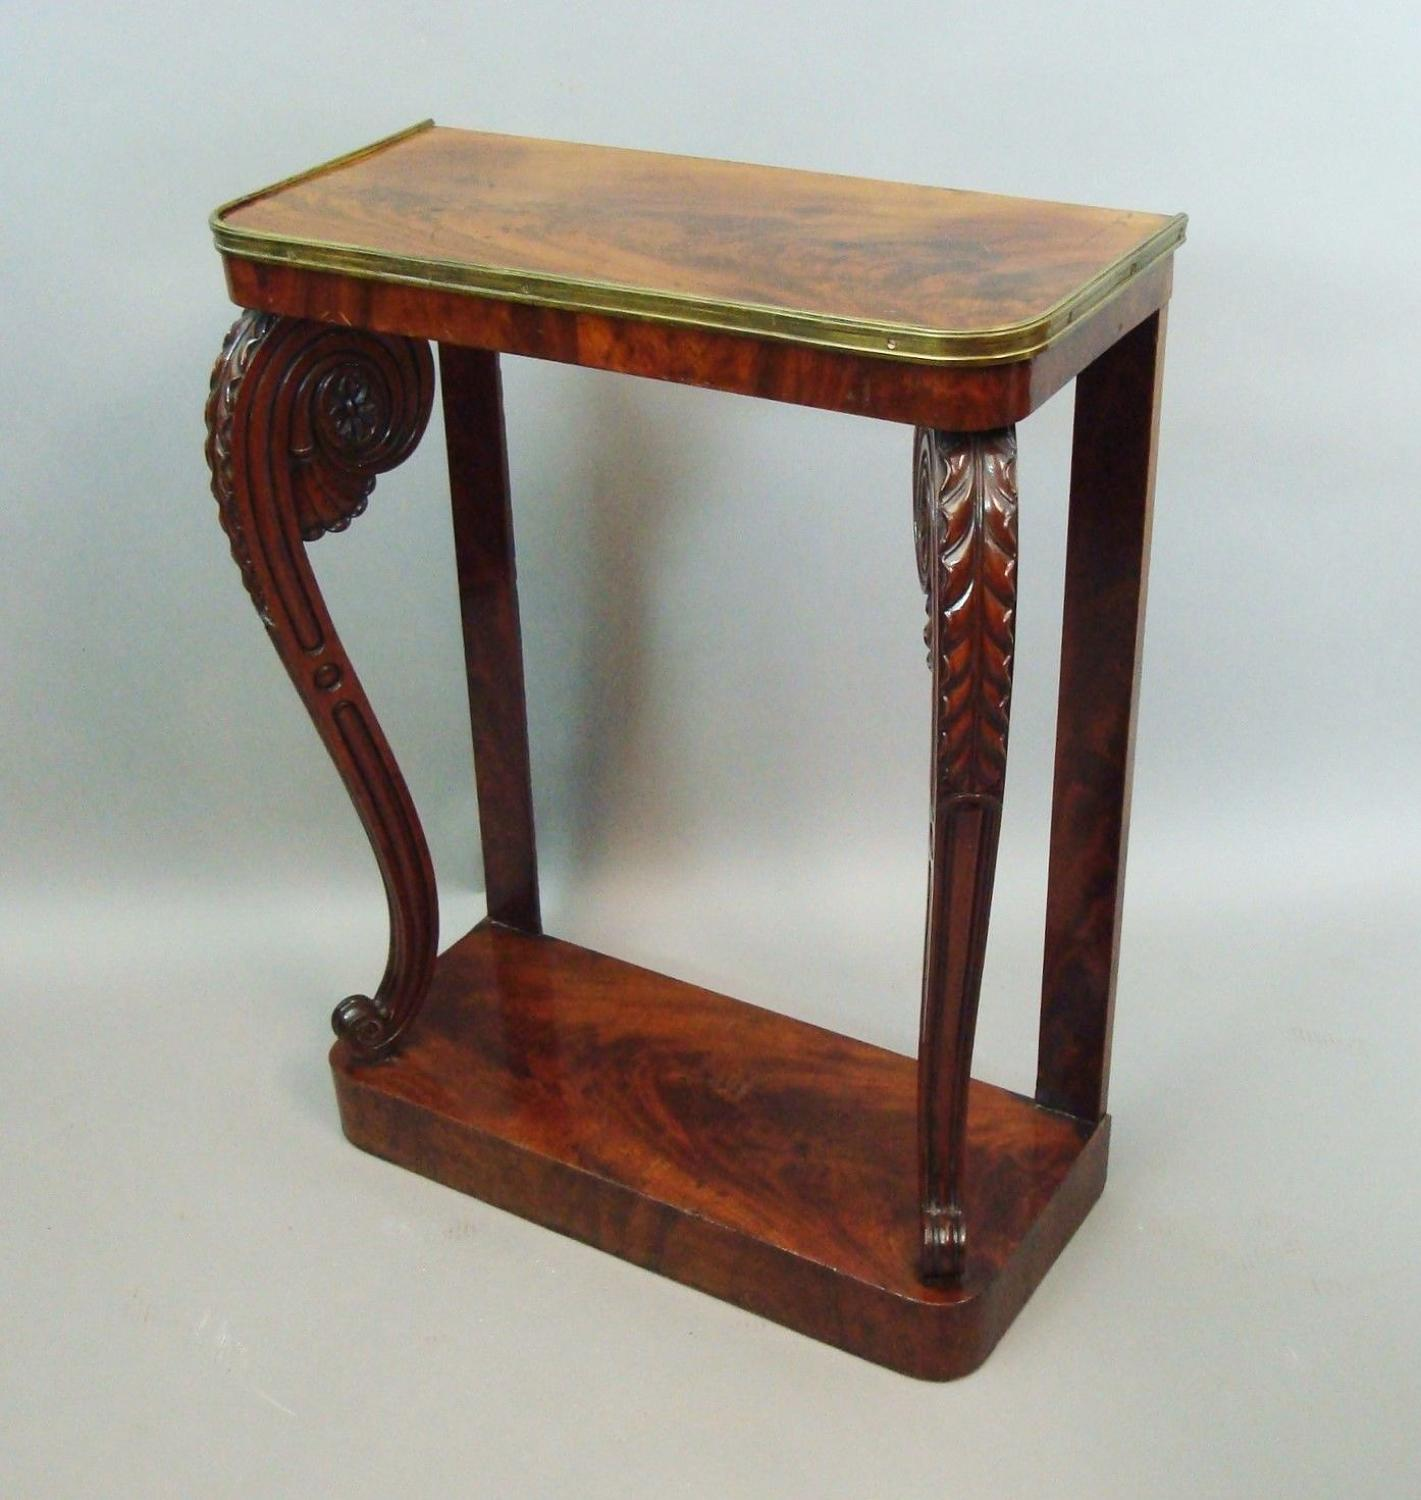 Regency figured mahogany console table